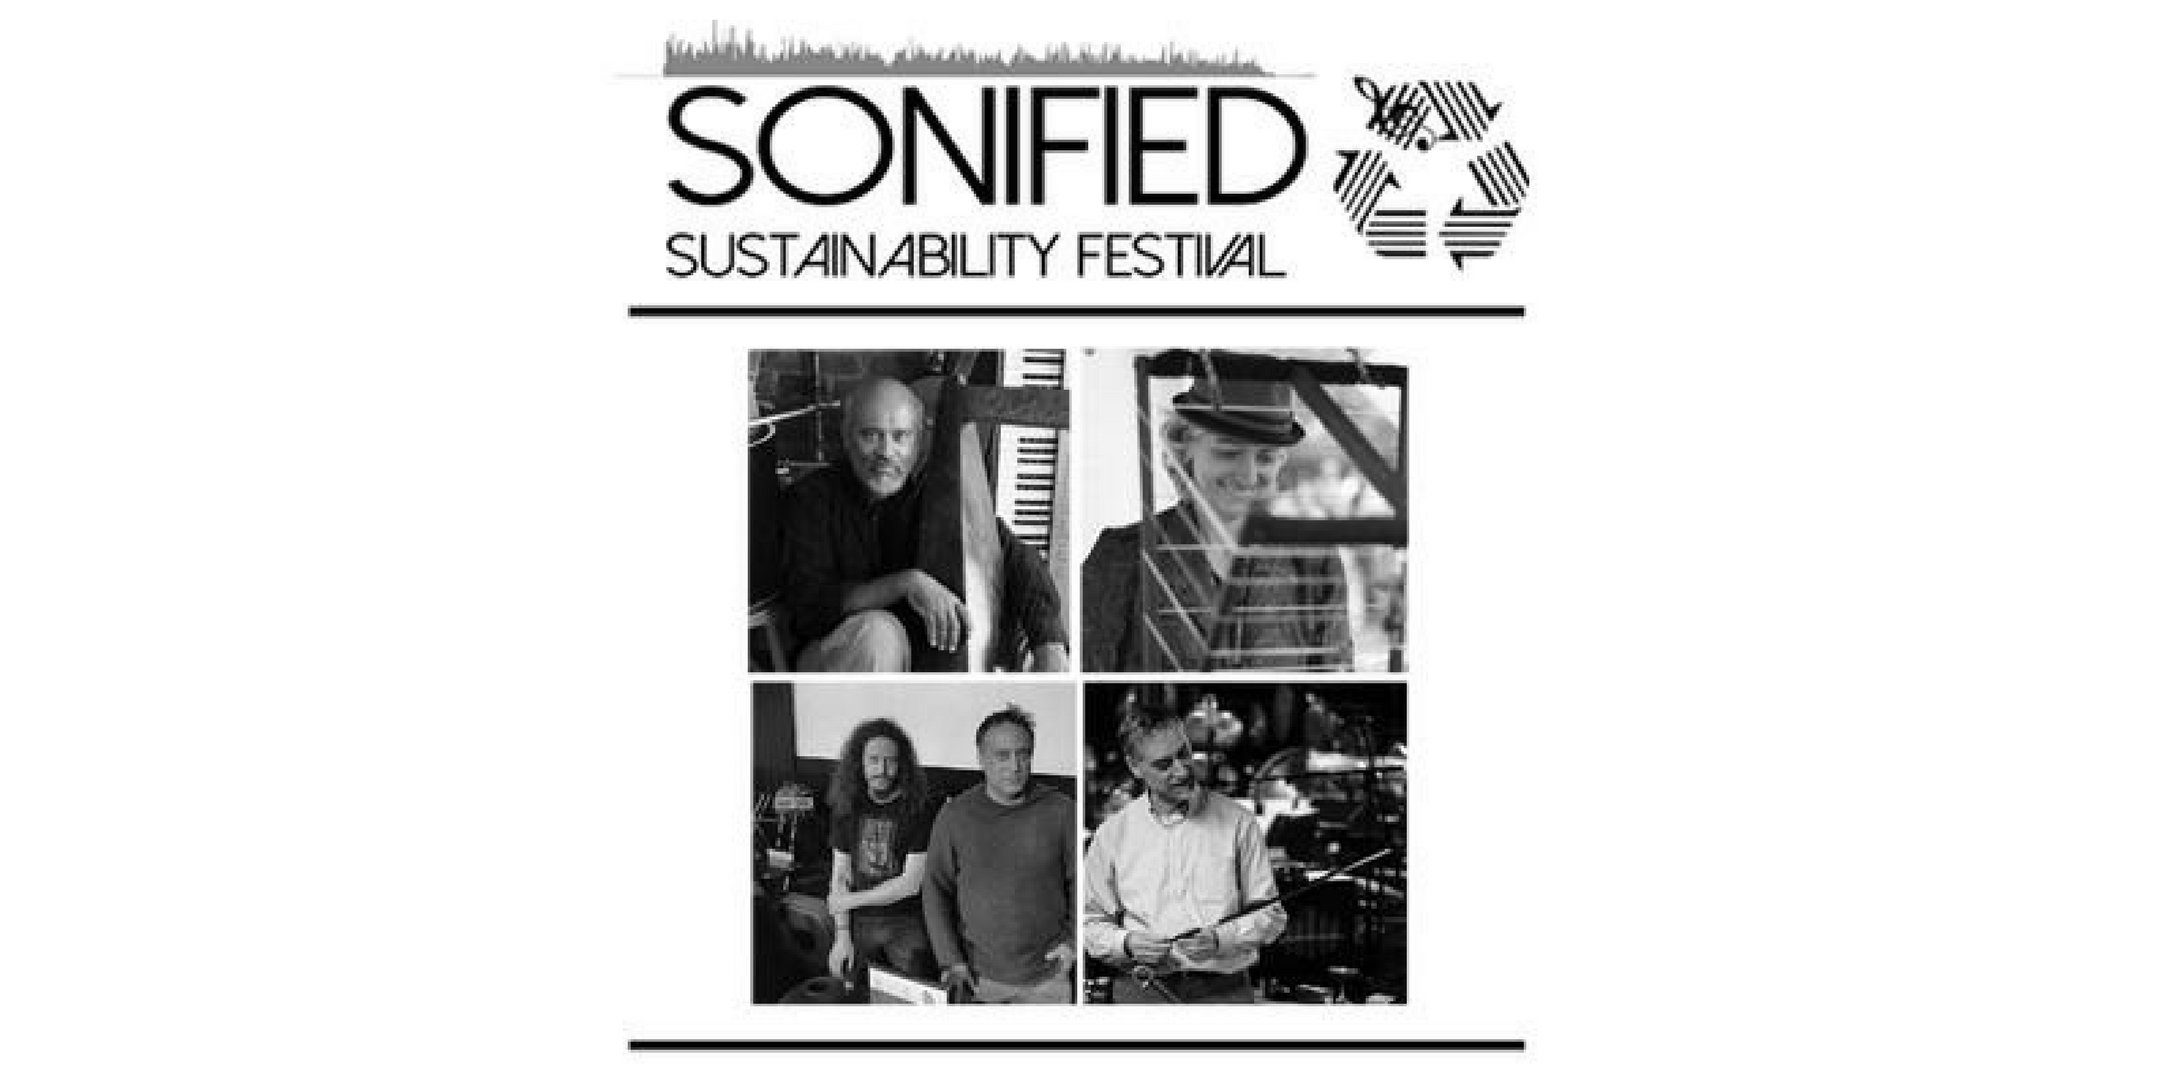 April 27 & 28 Soundwalks For Sonified Sustainability